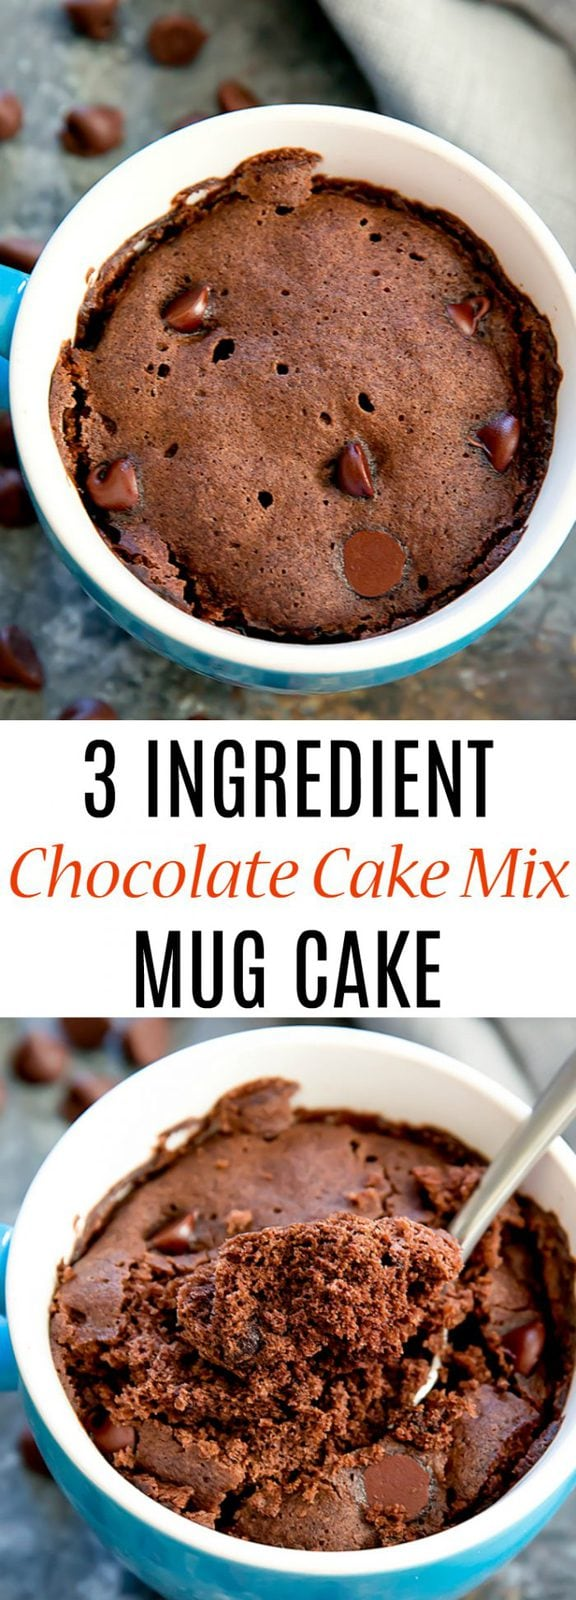 How To Make Brownies Using Chocolate Cake Mix